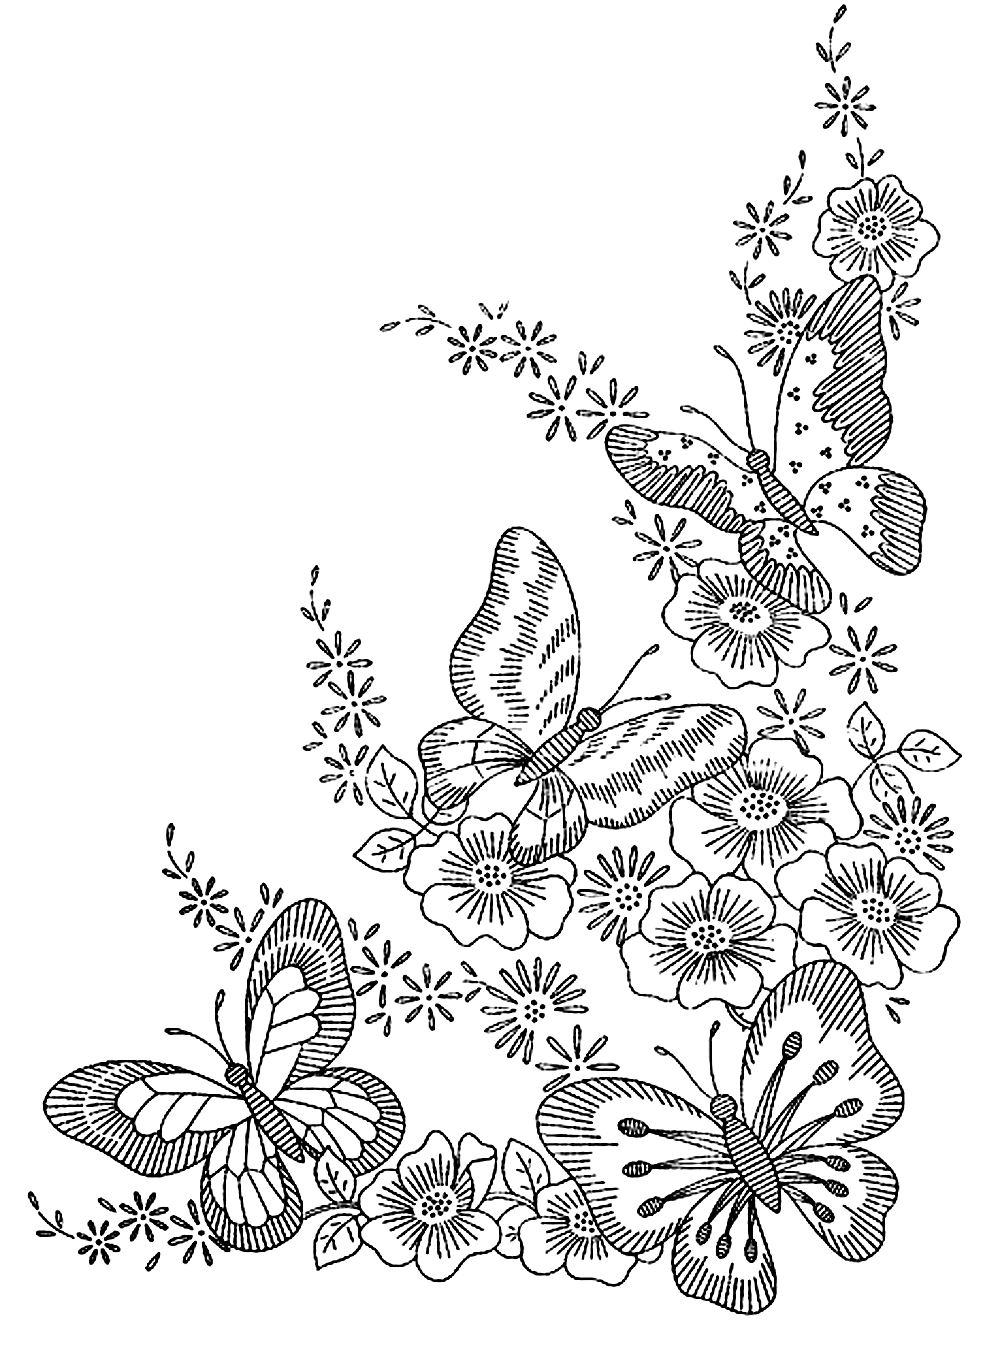 Coloring pictures for adults - Coloring Adult Difficult Butterflies Free To Print